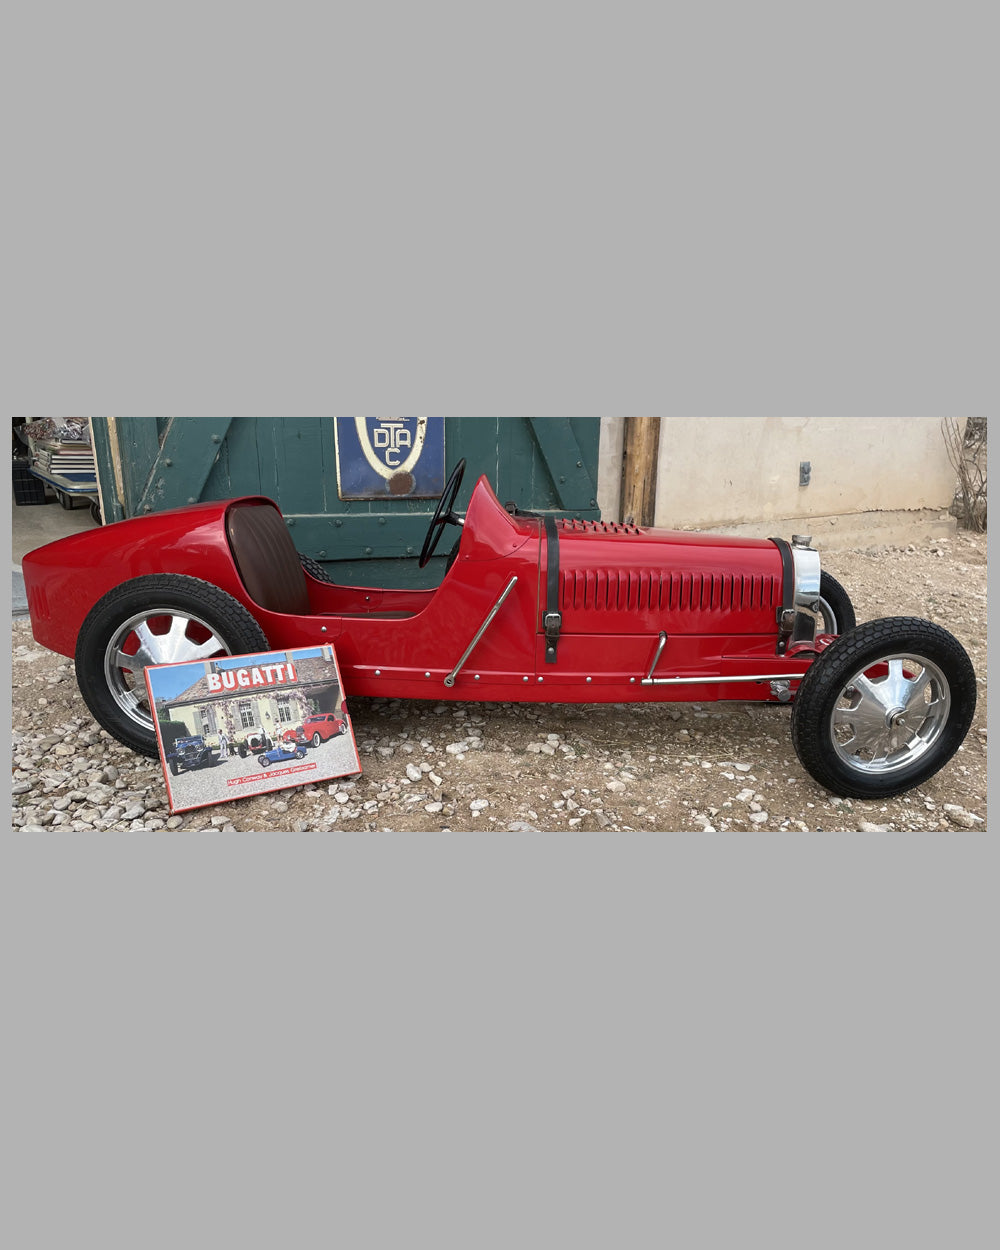 Baby Bugatti T52 child motorized car built in the U.K.